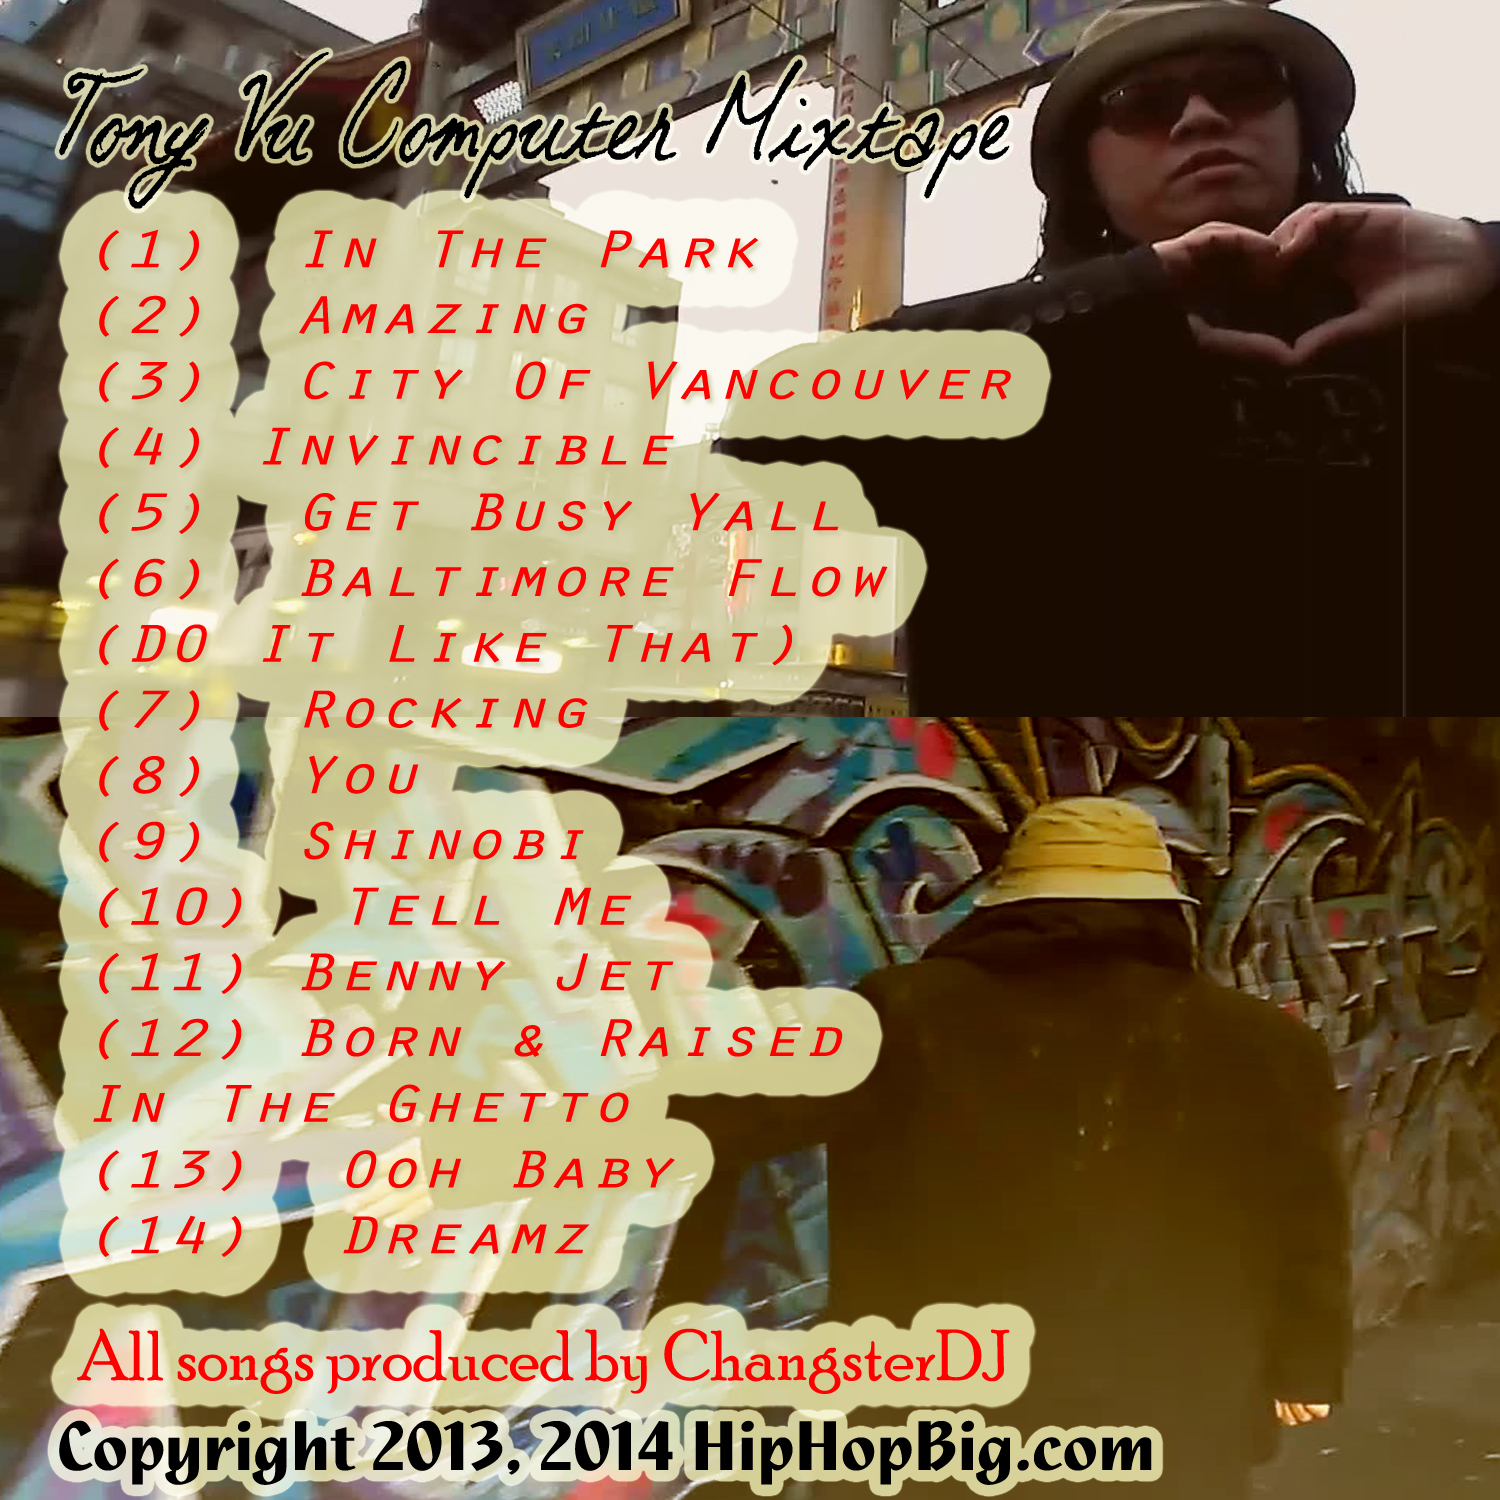 TVC mixtape back cover copy